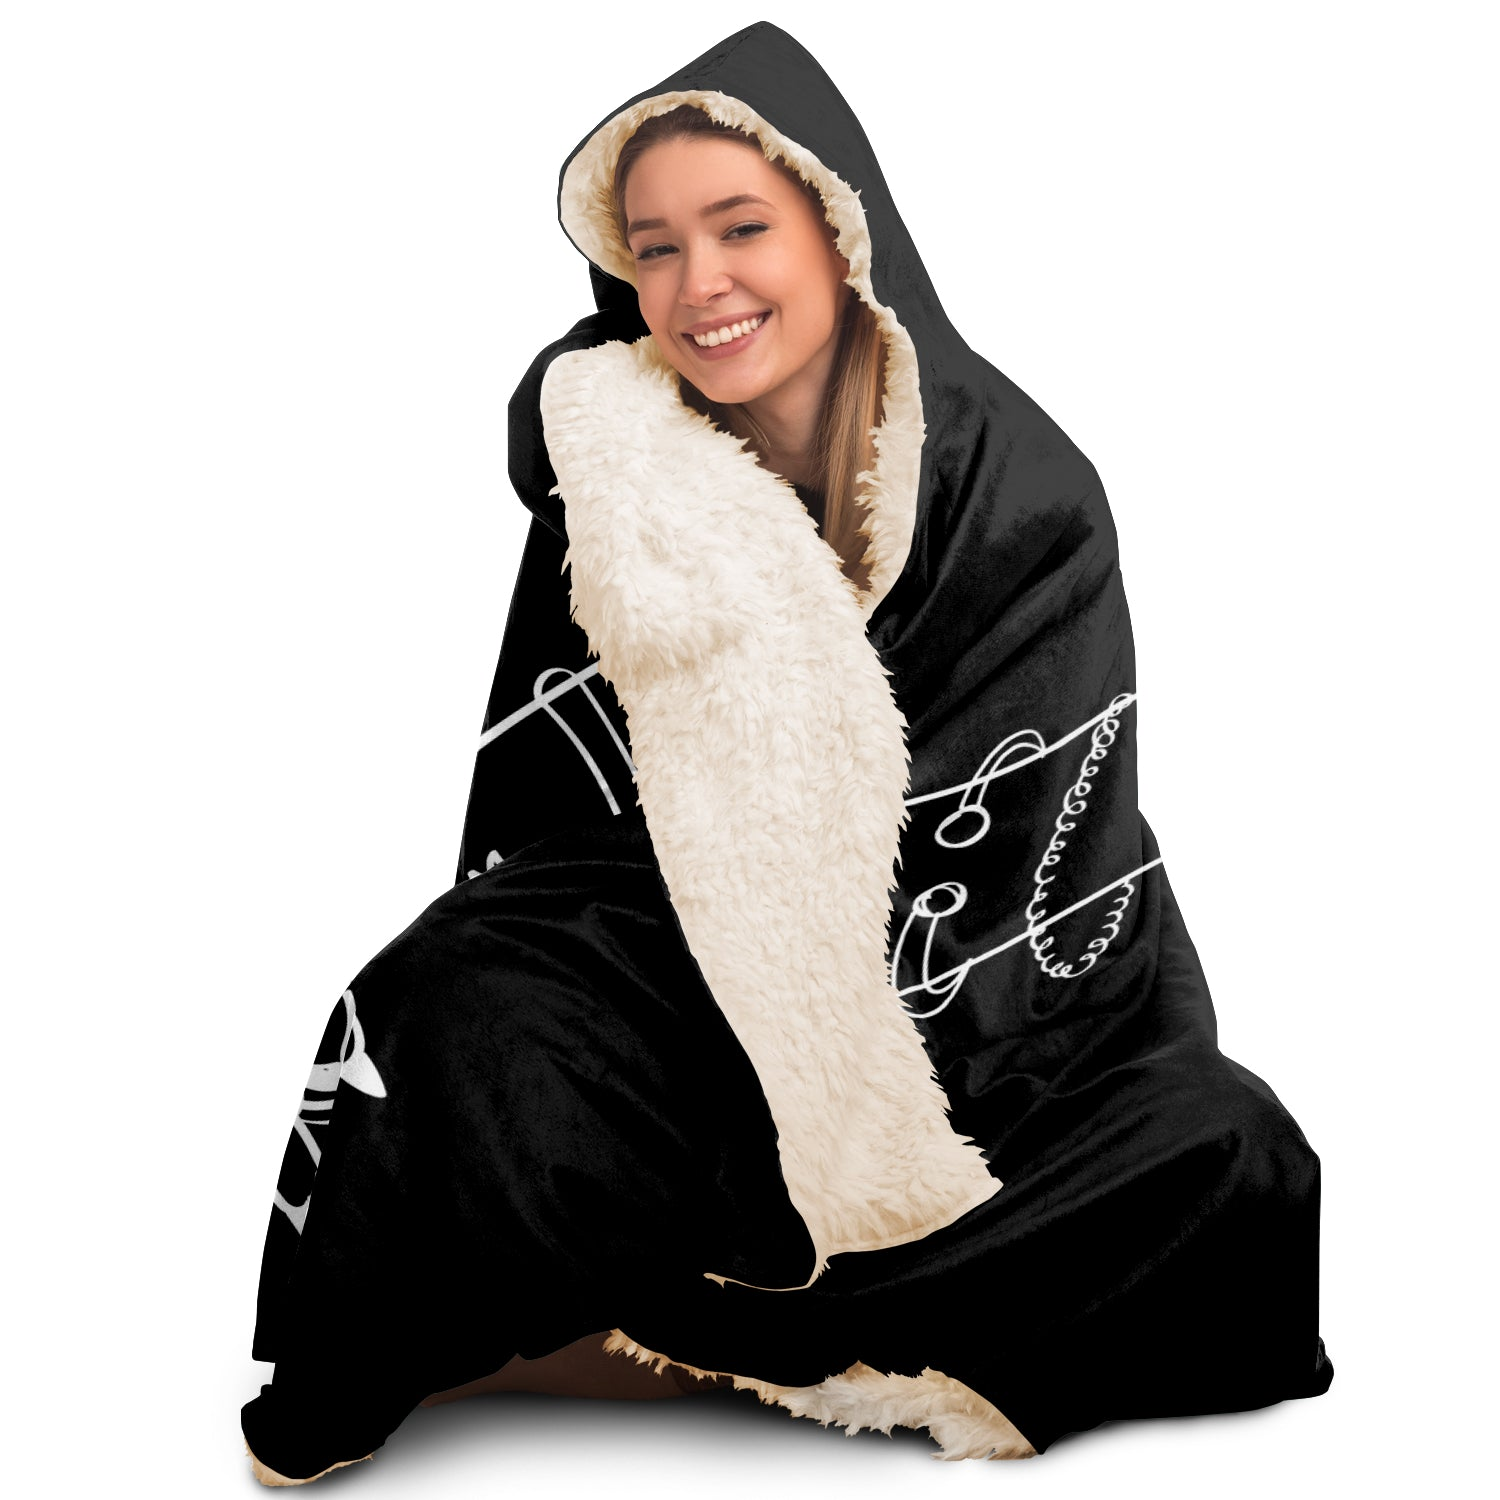 EDM Hooded Blanket